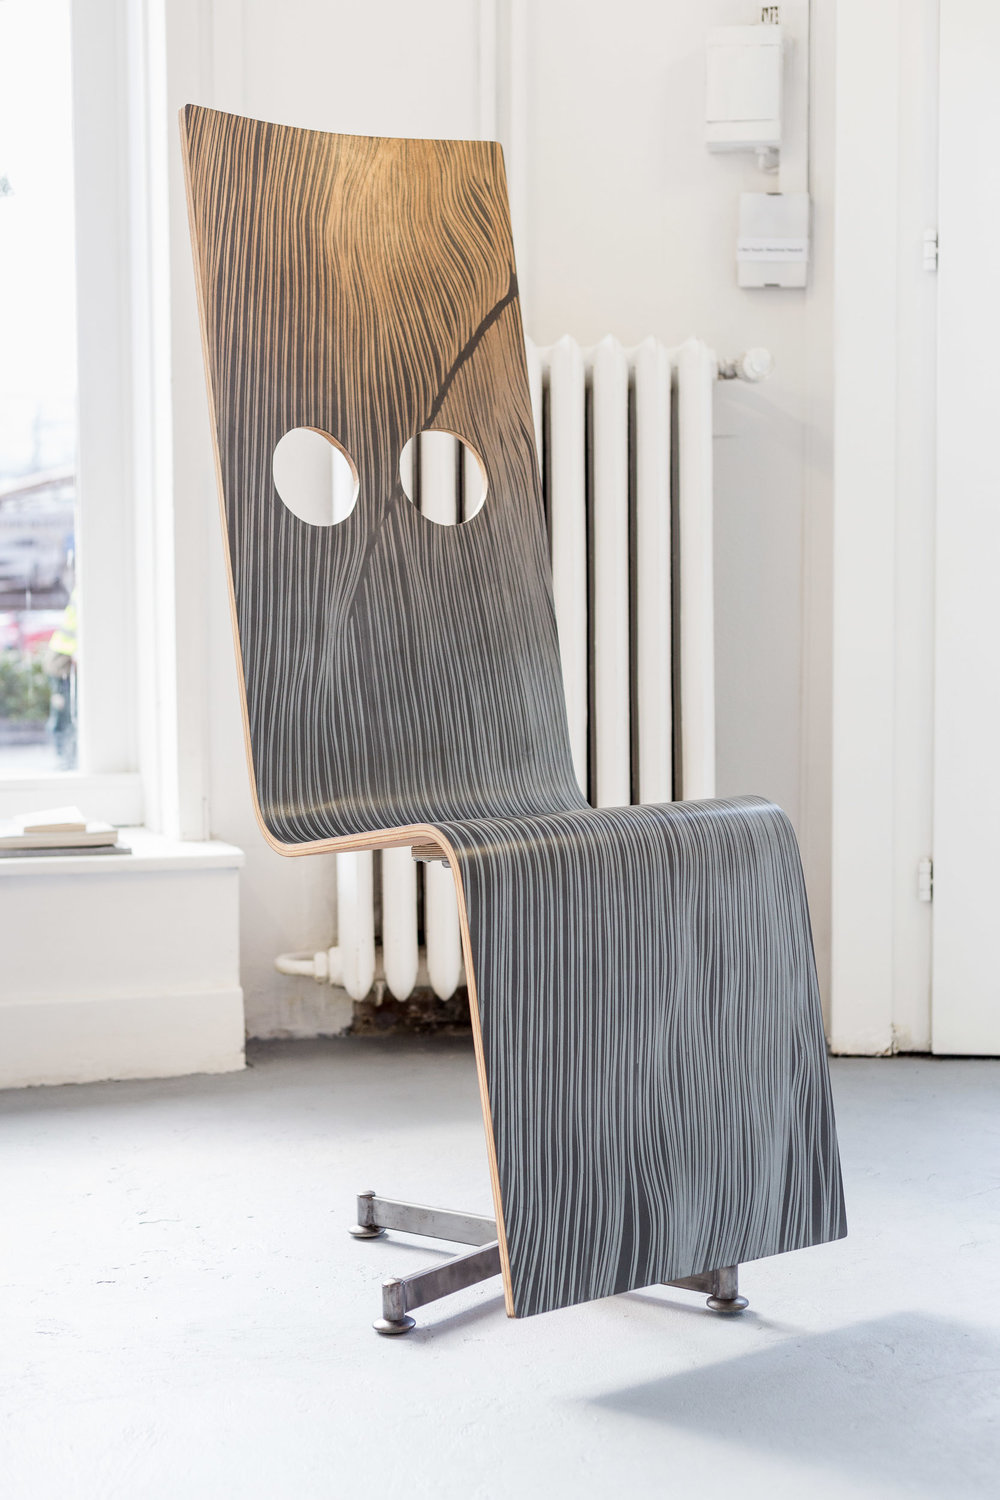 Fiona Banner,  Pinstripe Chair,  2015, graphite, vinyl, plywood, chair base, 148 x 52 x 50 cm  Photo: Kilian Bannwart